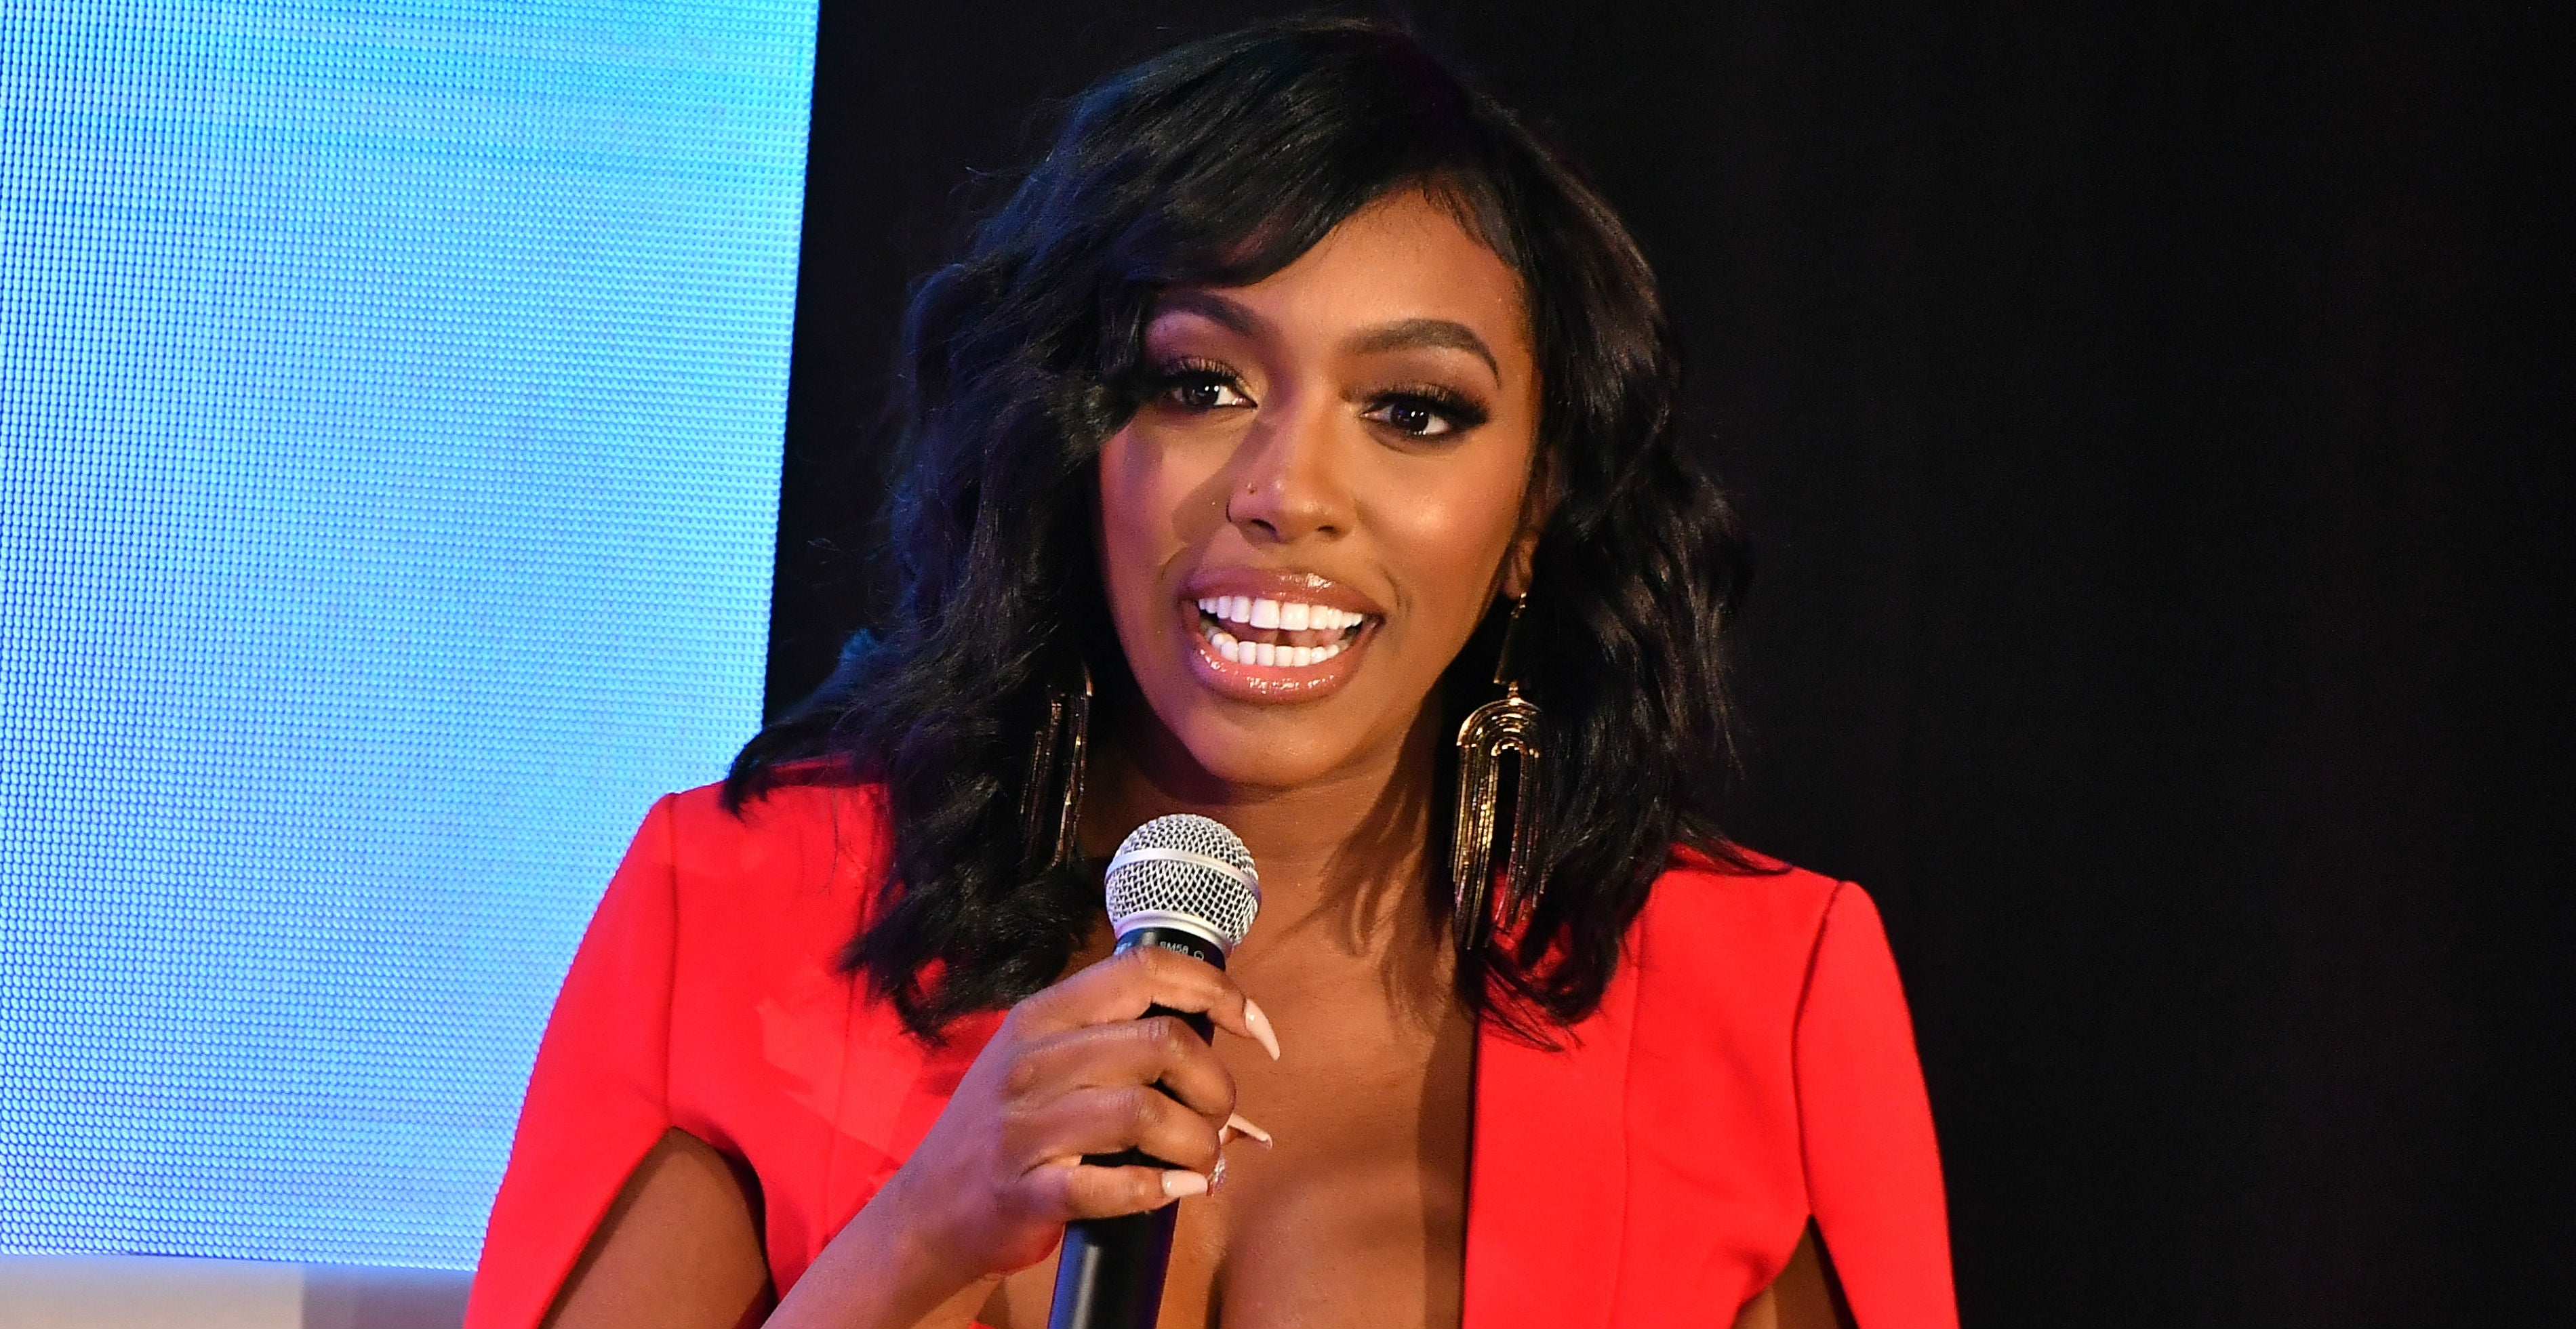 Porsha Williams Says She and Dennis McKinley Are Getting Married 'Next Year' After Reengagement